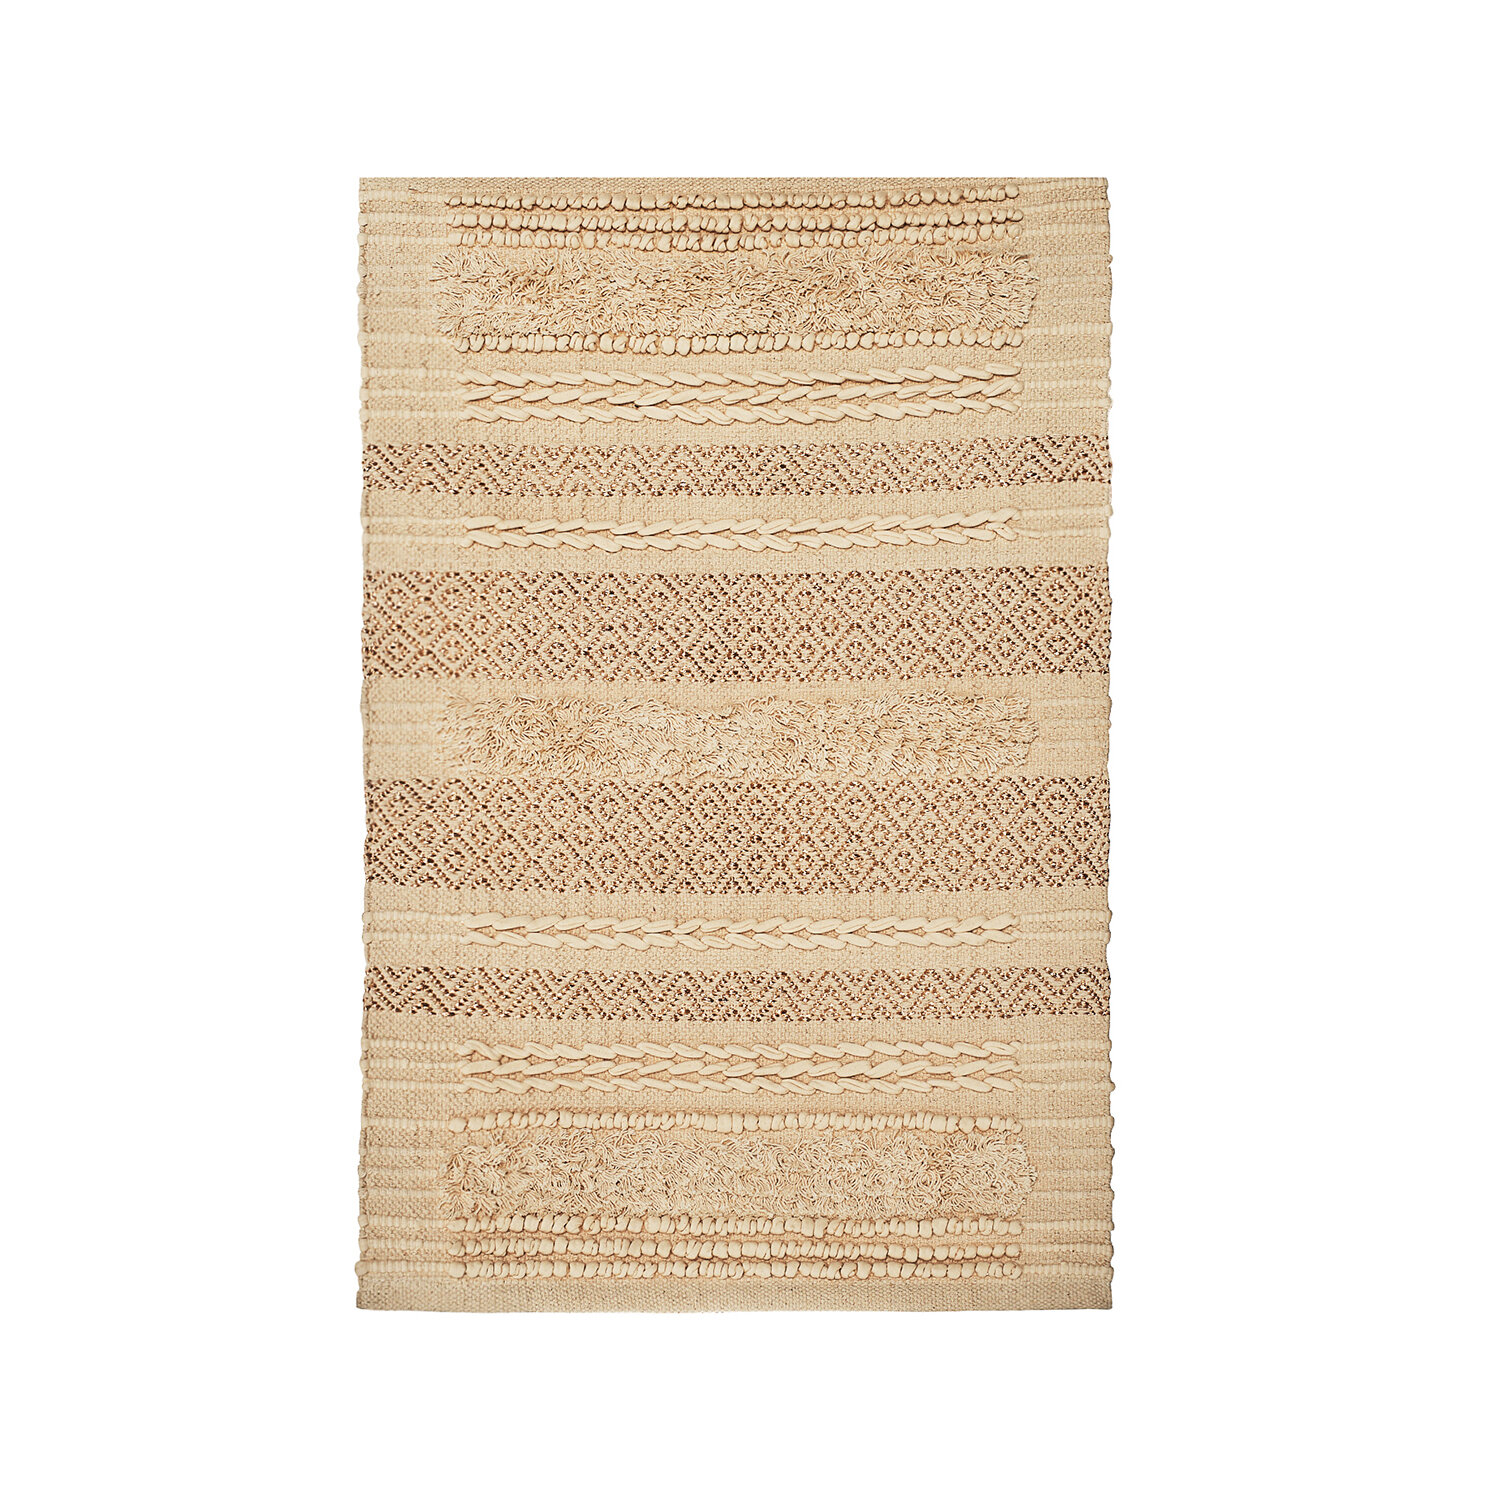 Union Rustic Area Rug Hand Woven Knotted Cotton Gold Thread Boho Throw Natural Color Environment Friendly 3 5